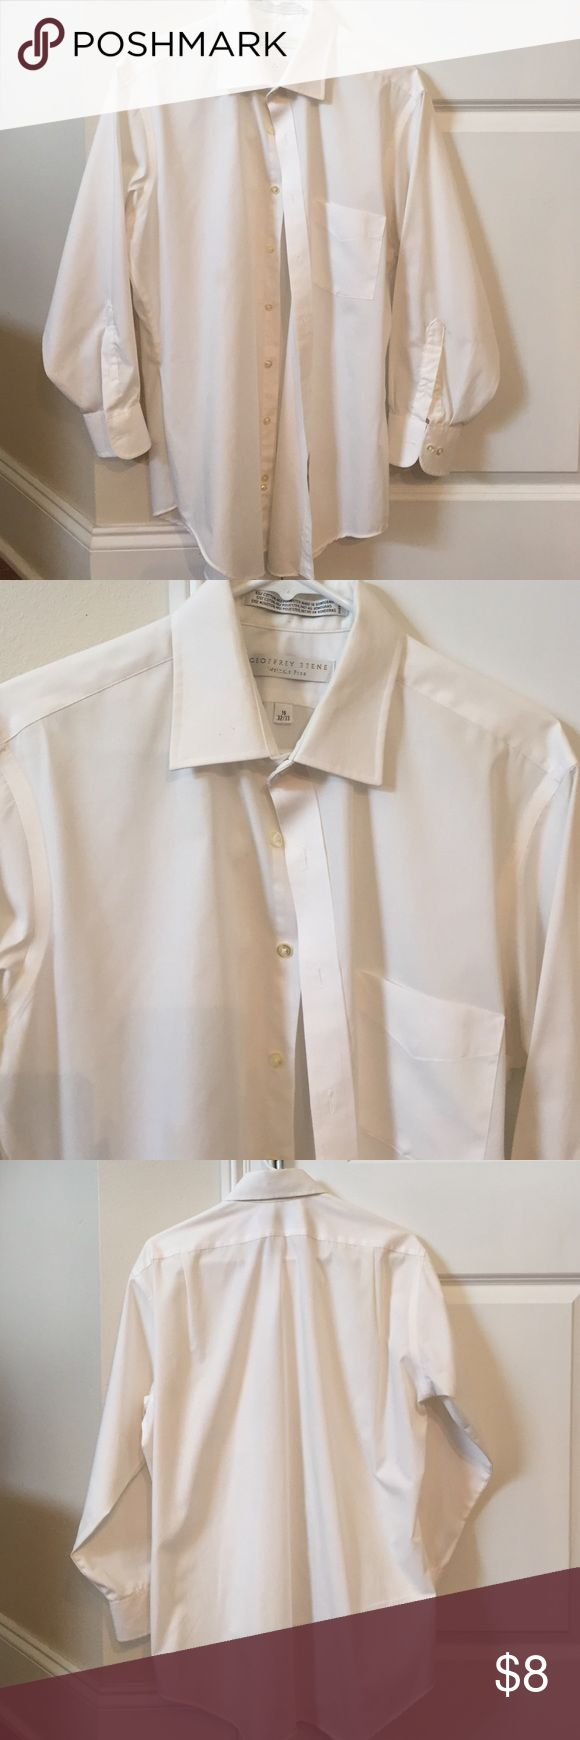 Geoffrey Beene shirt 16 White wrinkle free shirt in good used condition.  Size 16 32/33 just a tiny pit spec mark in collar that should come off w spray n wash. Geoffrey Beene Shirts Dress Shirts